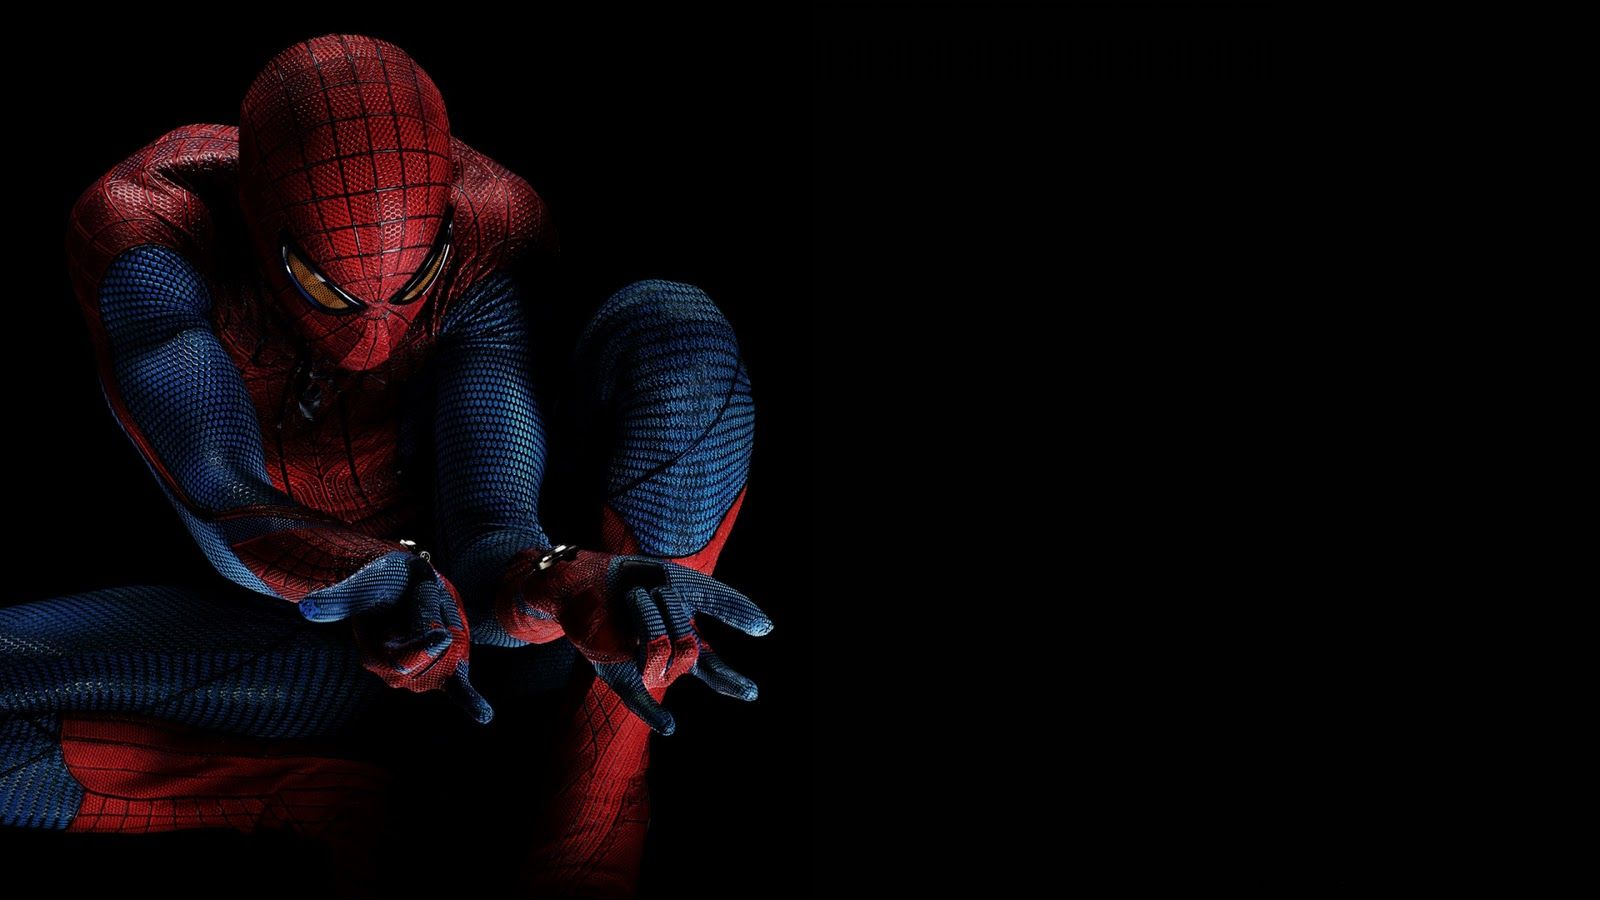 The Amazing Spider Man Is An Upcoming American Superhero Film Directed By Marc Webb Based On Comic Book Of Same Name And Starring Andrew Garfield